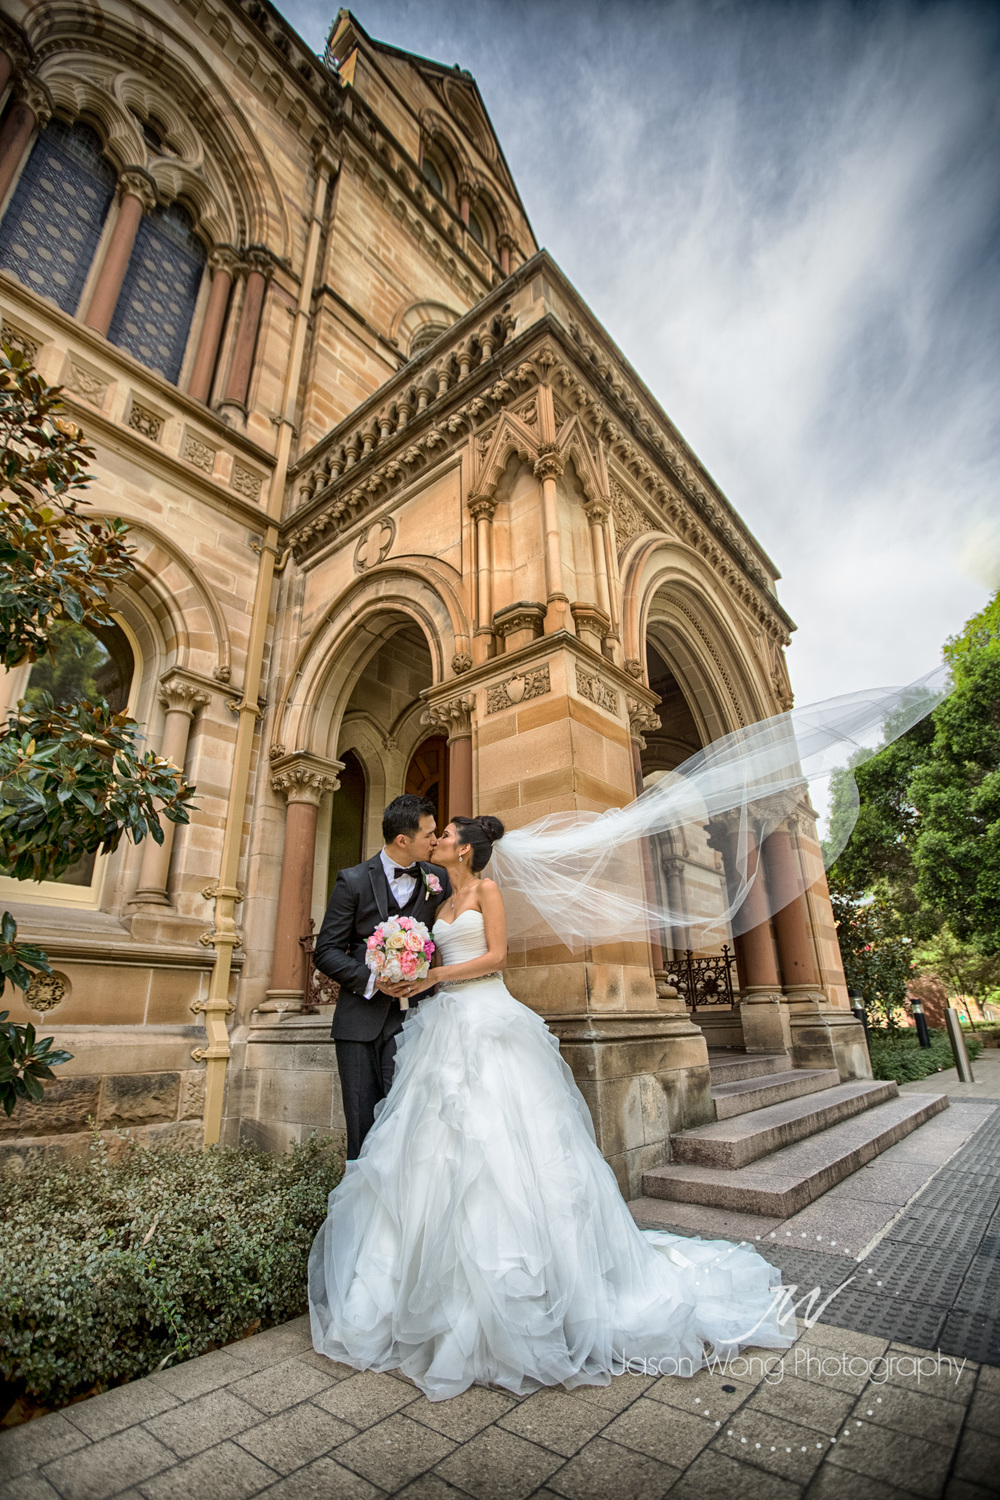 north-terrace-adelaide-kiss-flying-veil.jpg